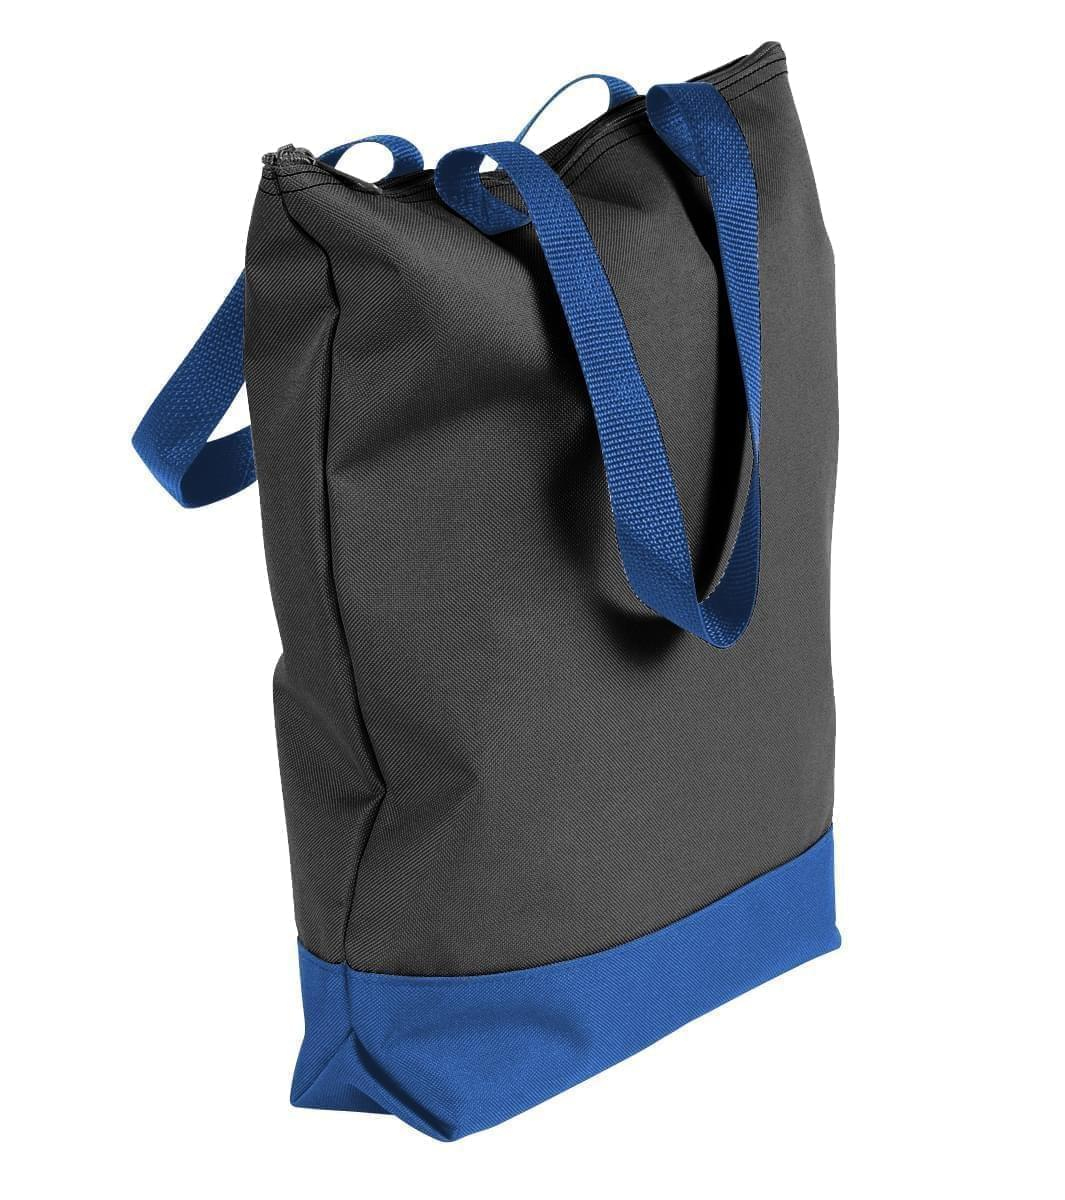 USA Made Canvas Portfolio Tote Bags, Black-Royal Blue, 1AAMX1UAH3